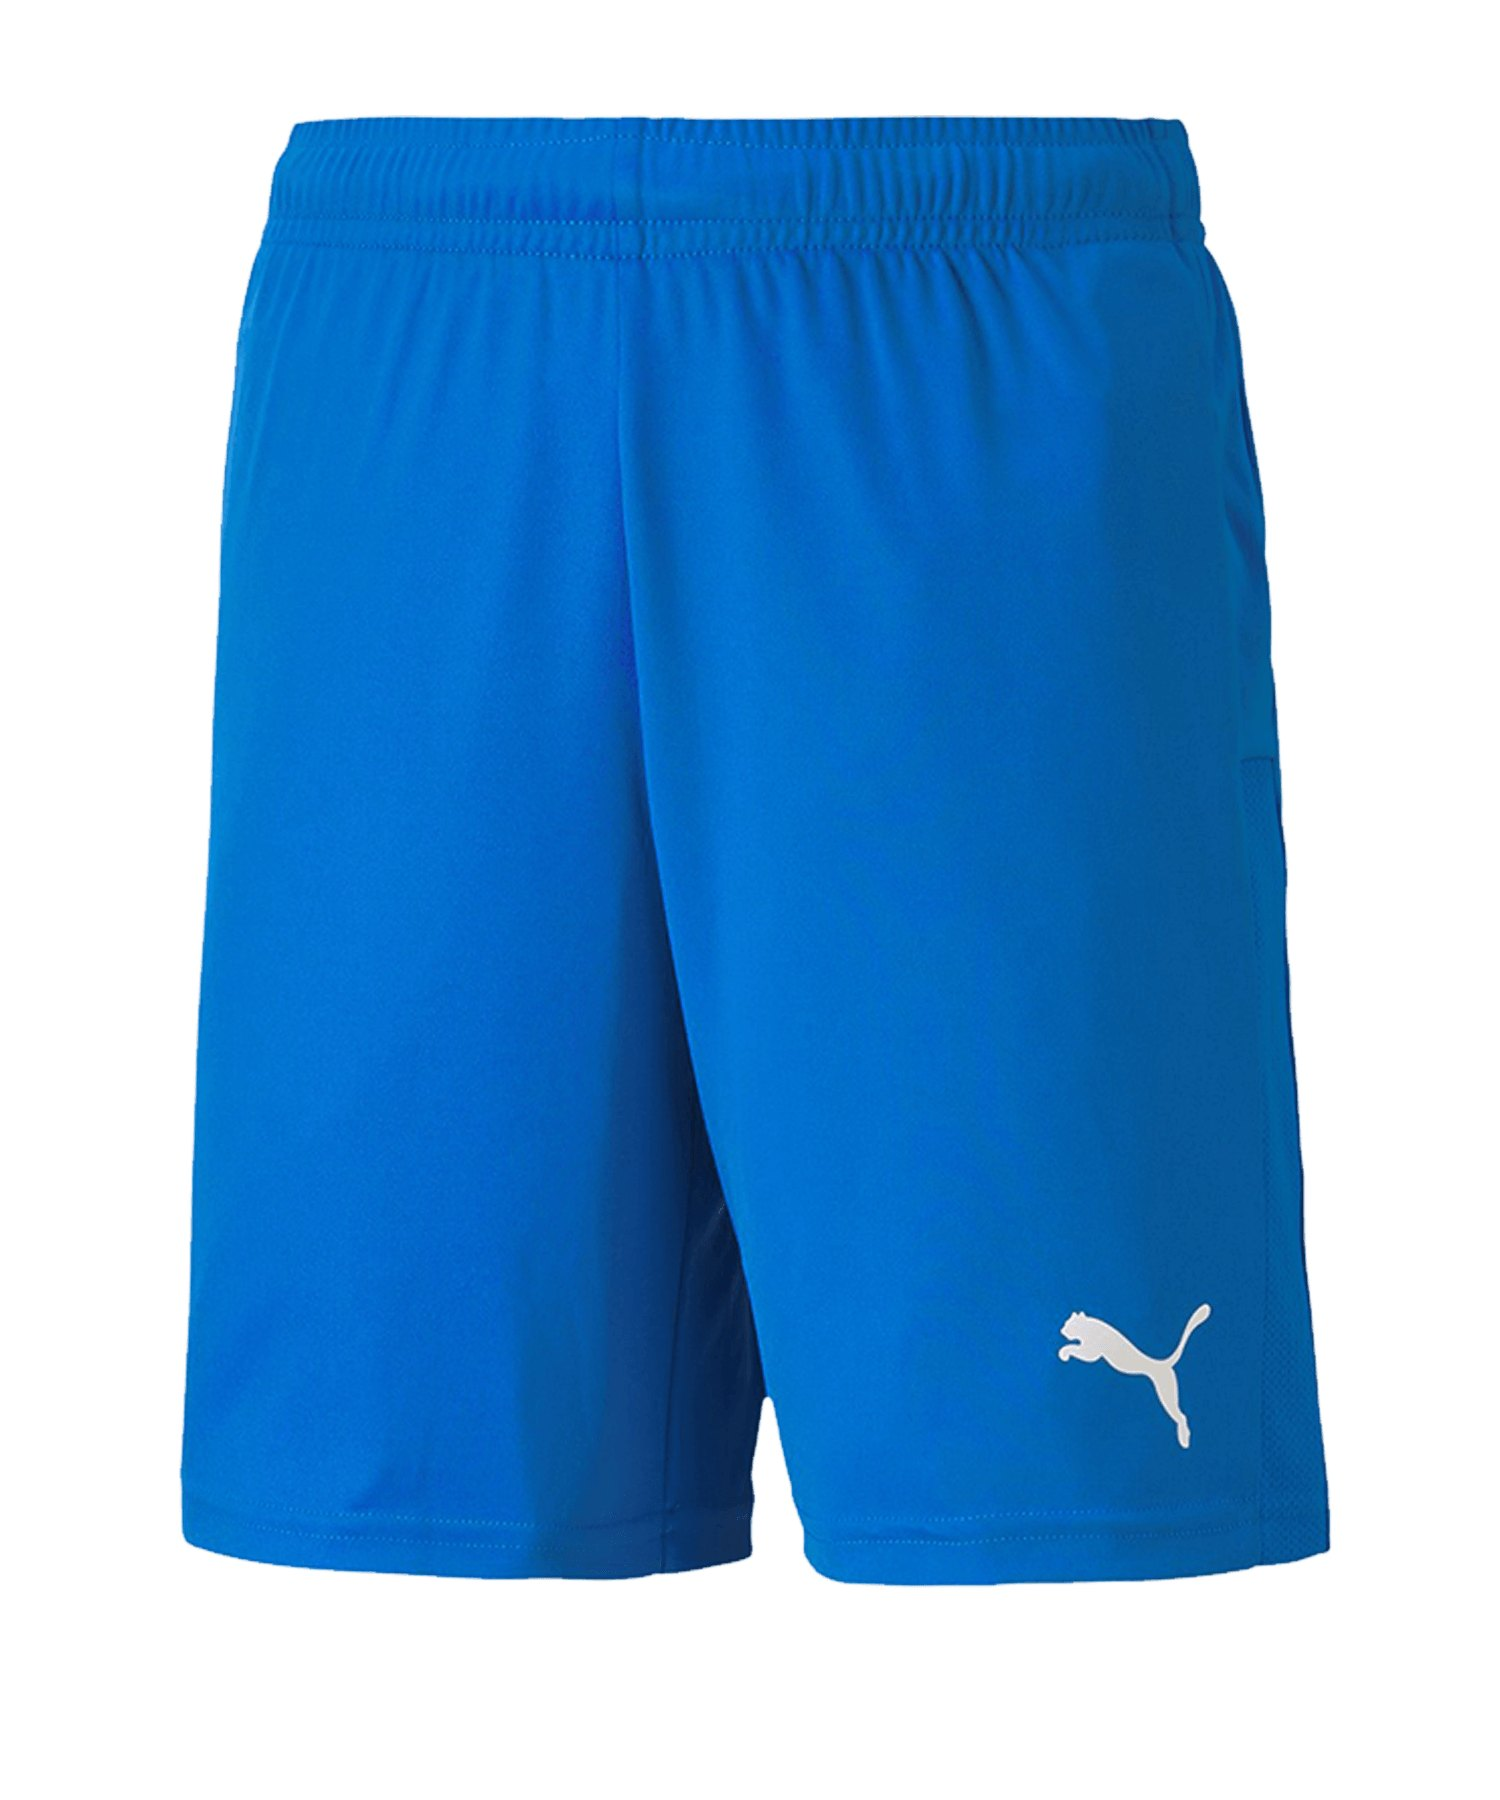 PUMA teamGOAL 23 Knit Short Kids Blau F02 - blau